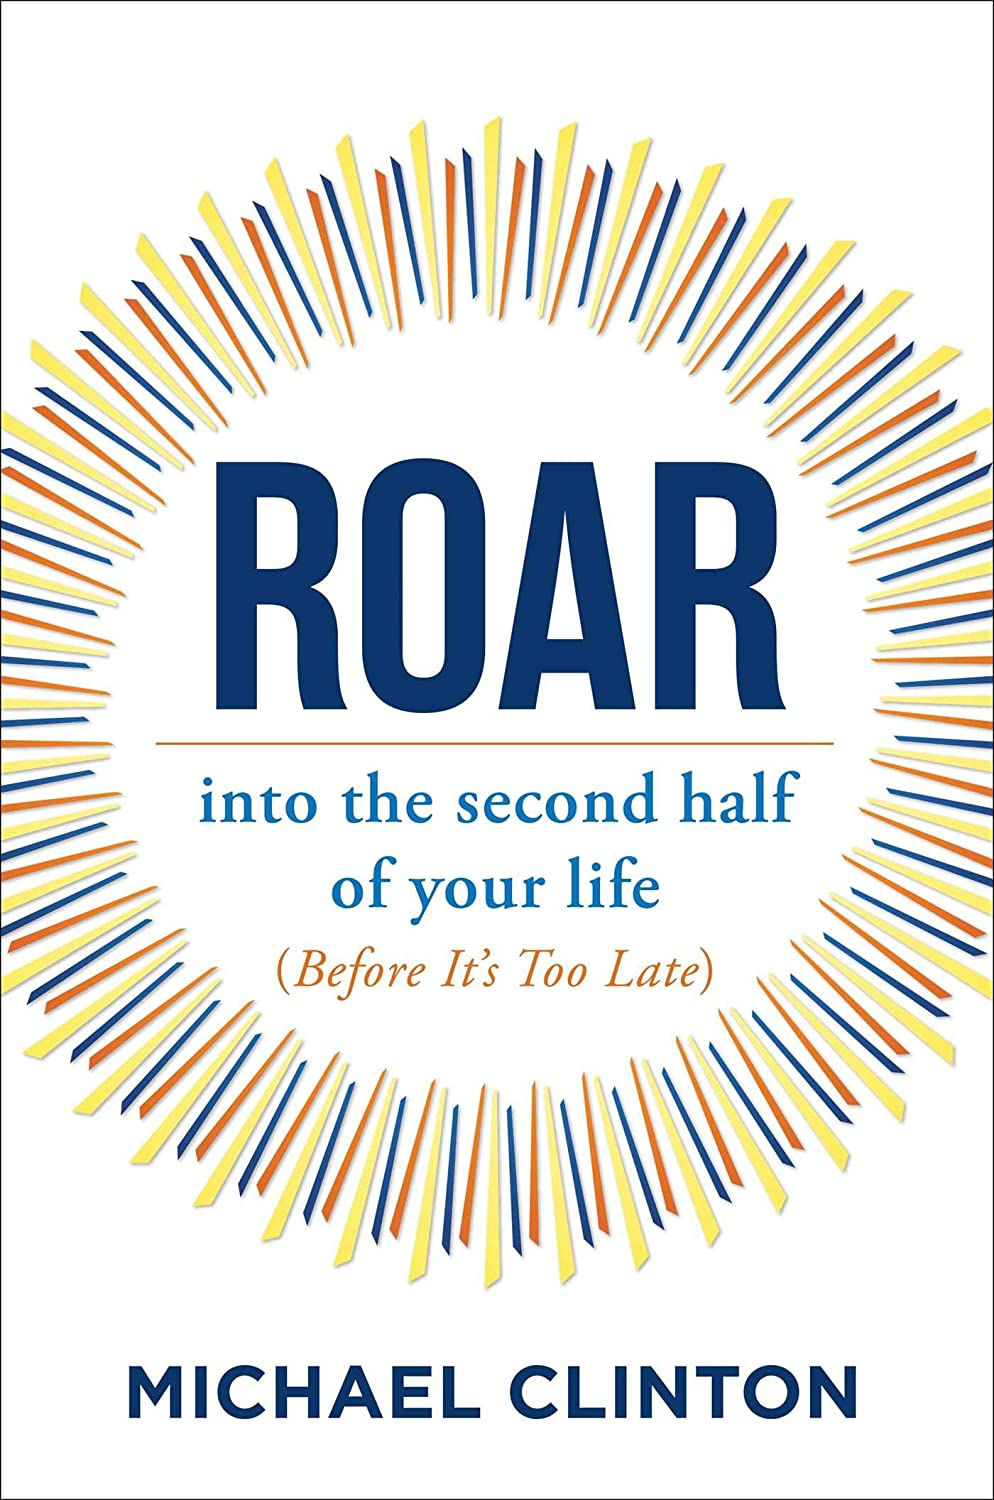 Roar: into the second half of your life (before its too late)